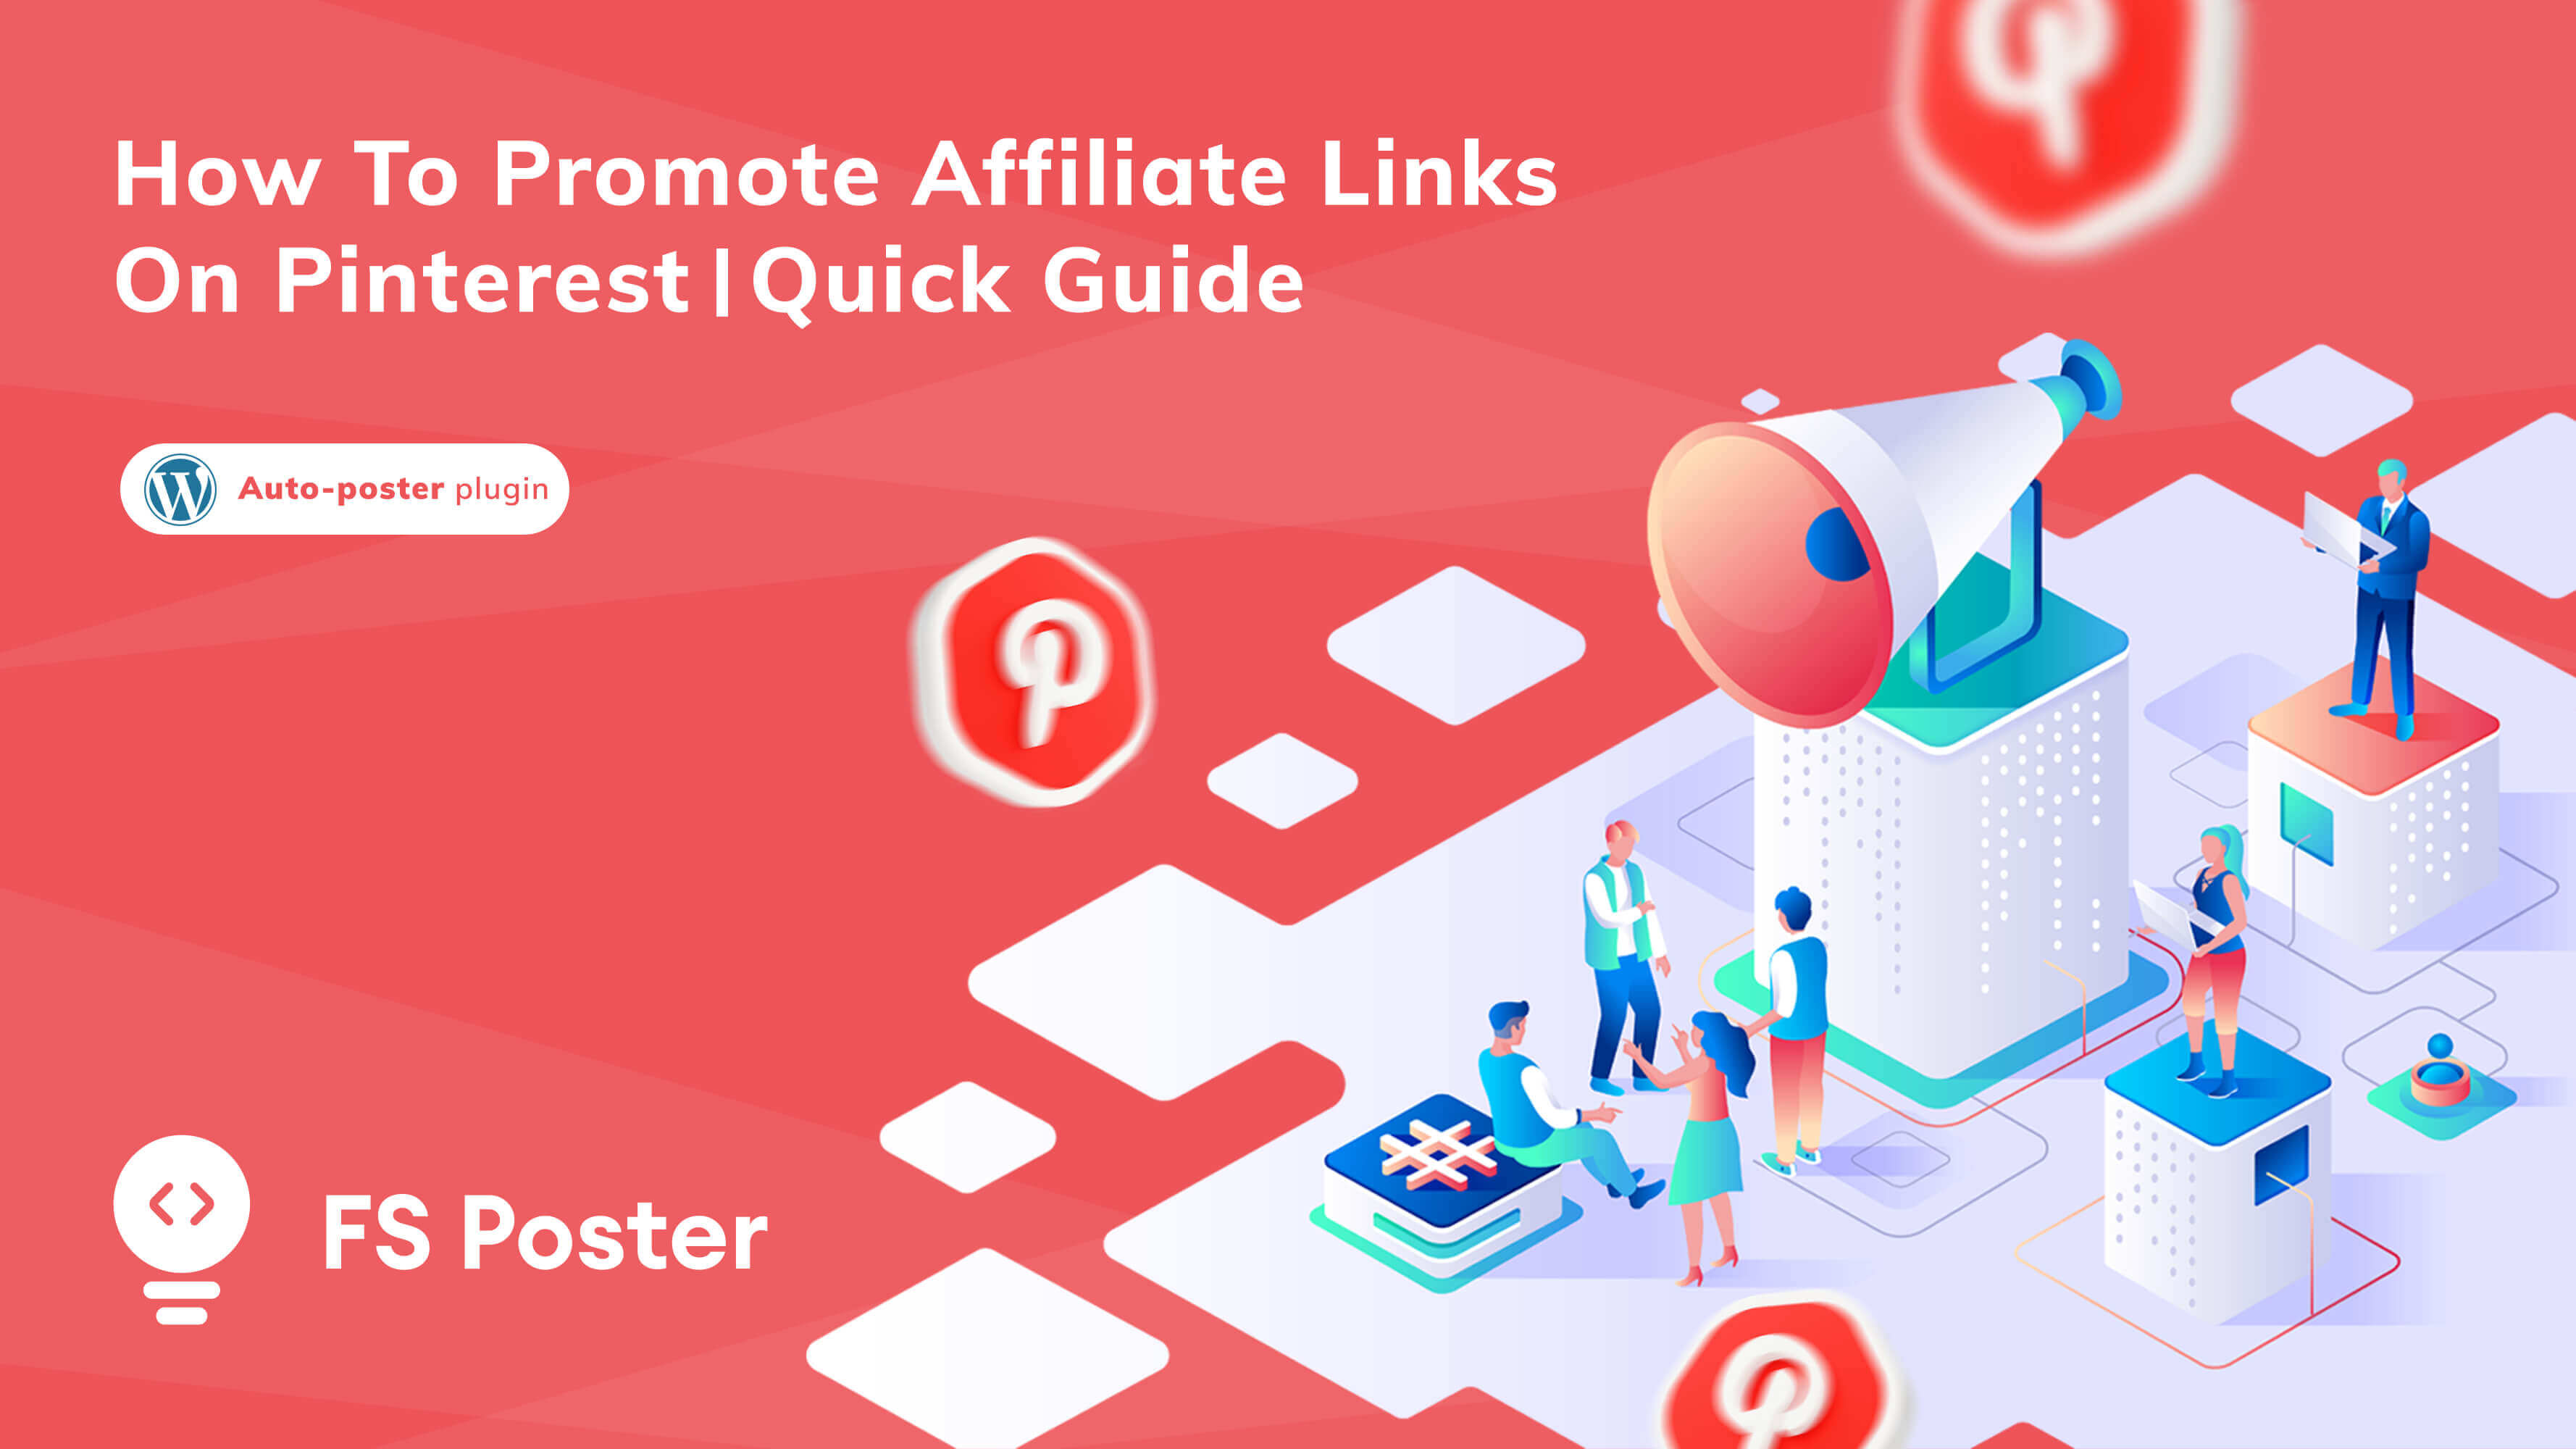 How to promote affiliate links on Pinterest | Quick Guide